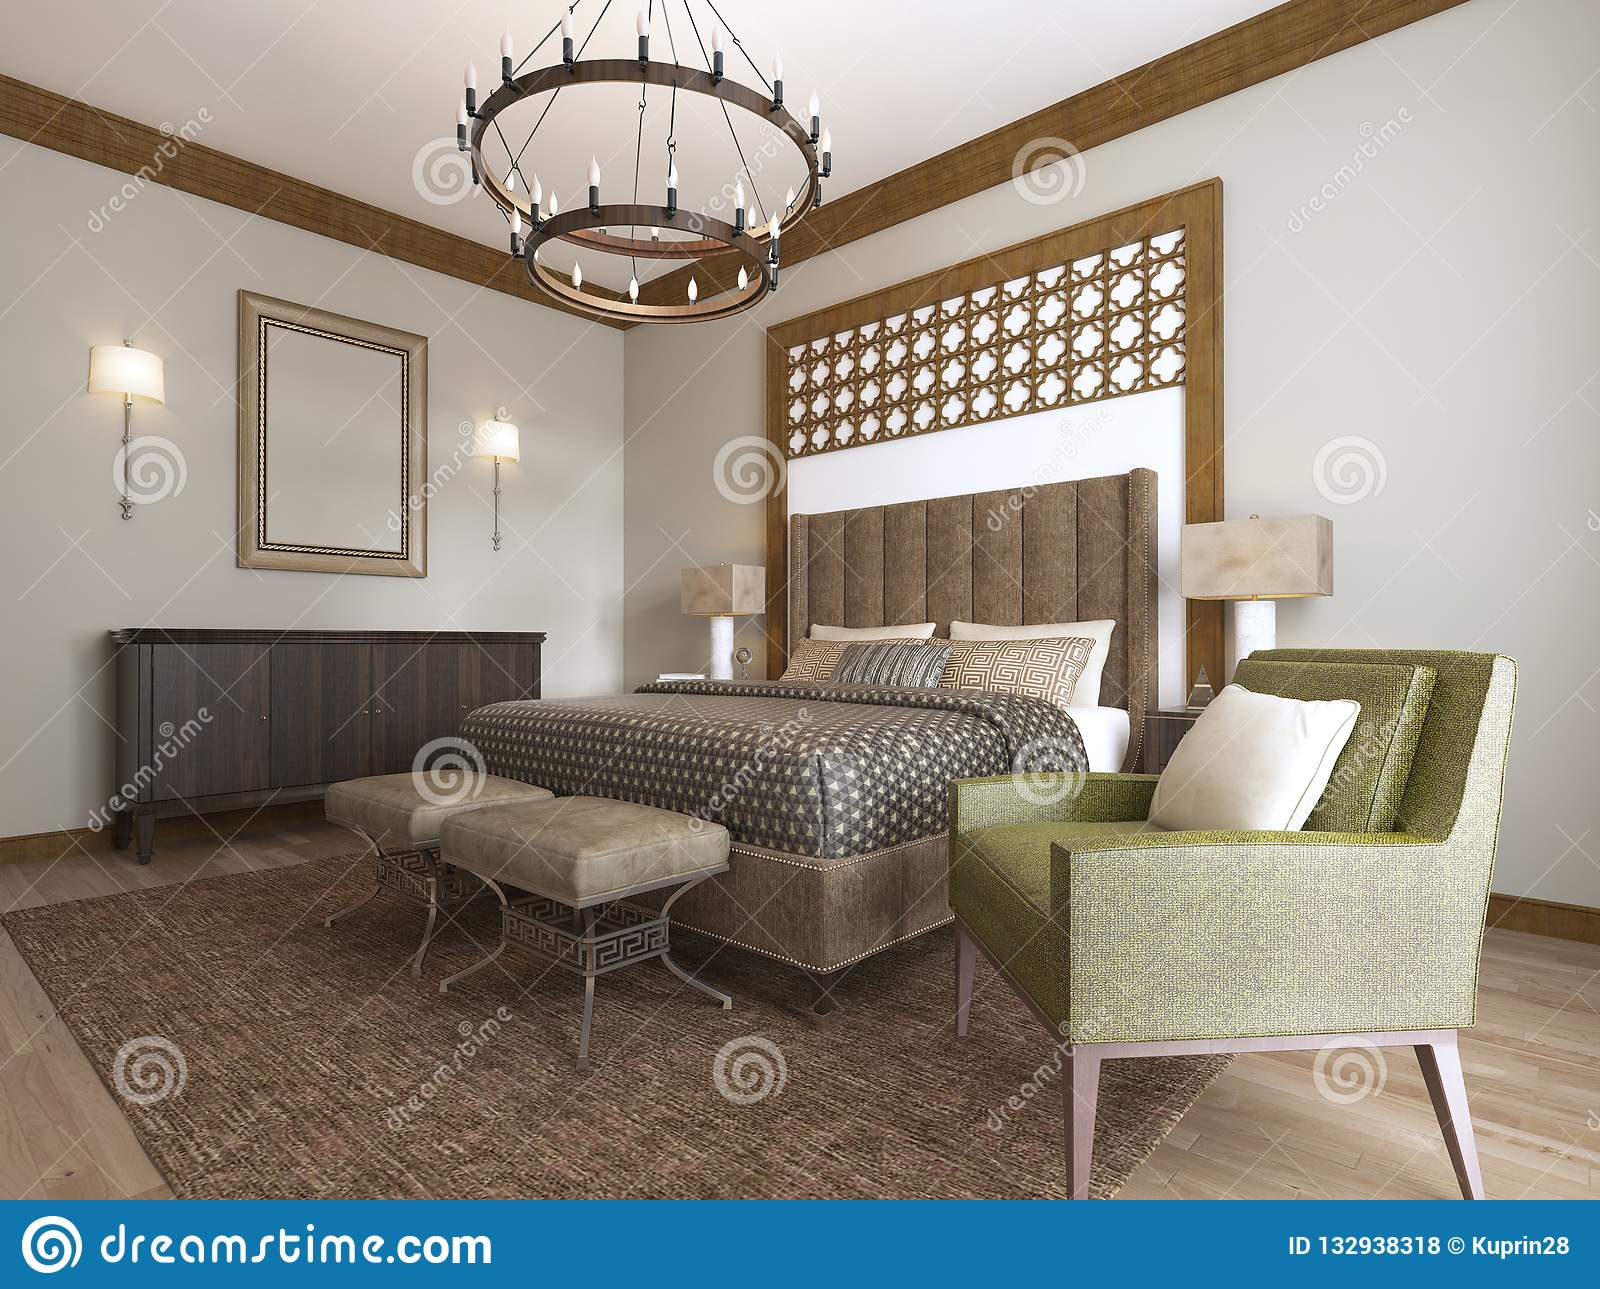 Swell Bedroom In A Middle Eastern Arabic Style Stock Illustration Home Interior And Landscaping Elinuenasavecom